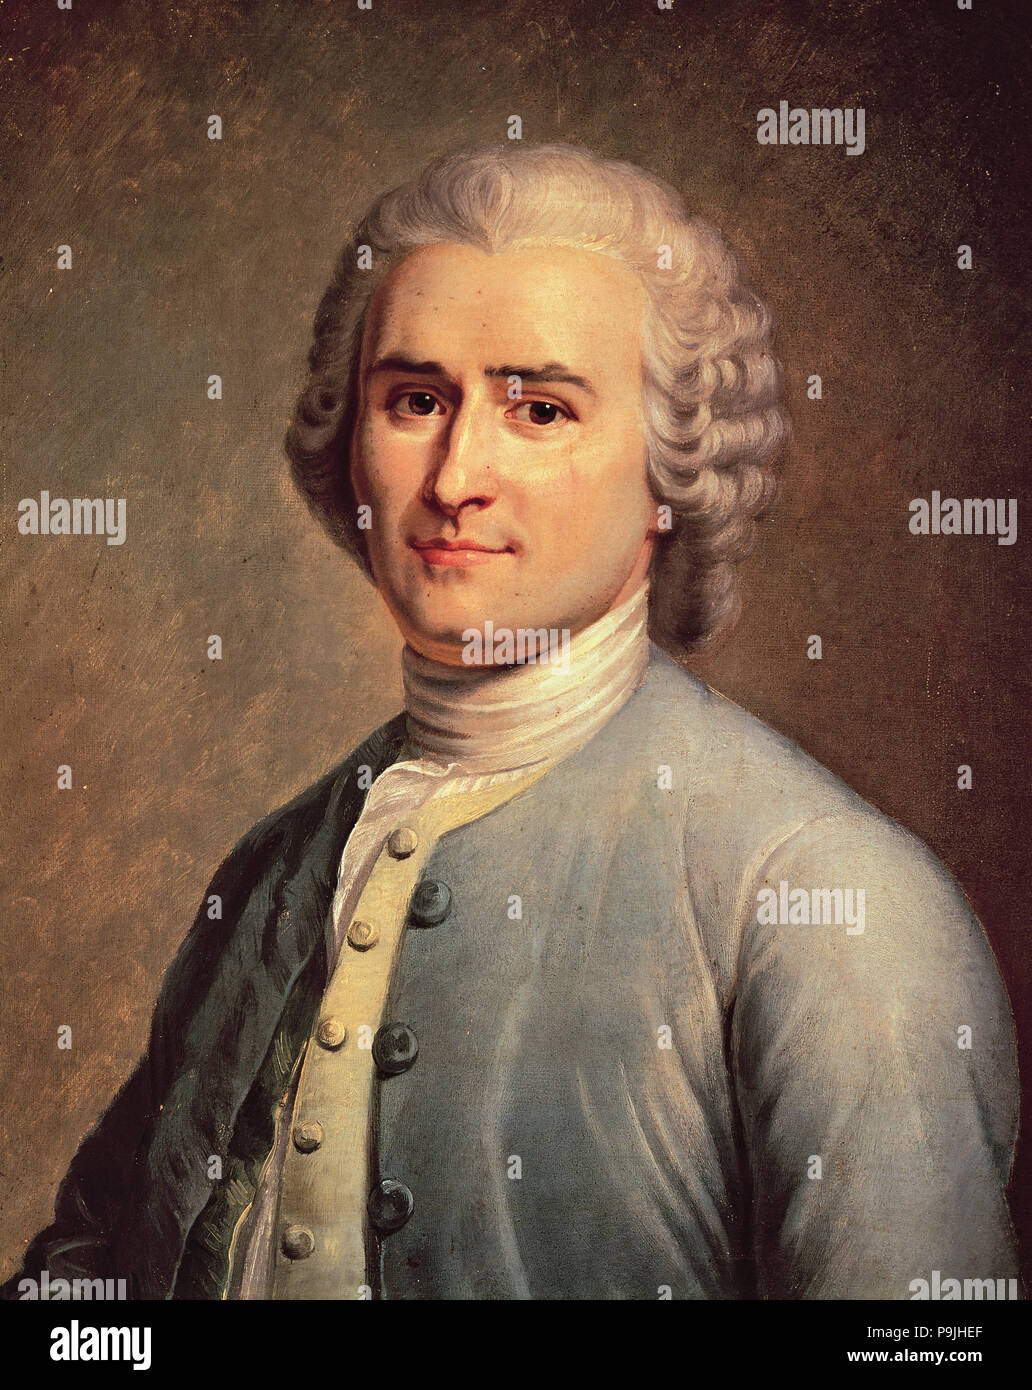 Jean Jacques Rousseau 1712 1778 Swiss Writer And